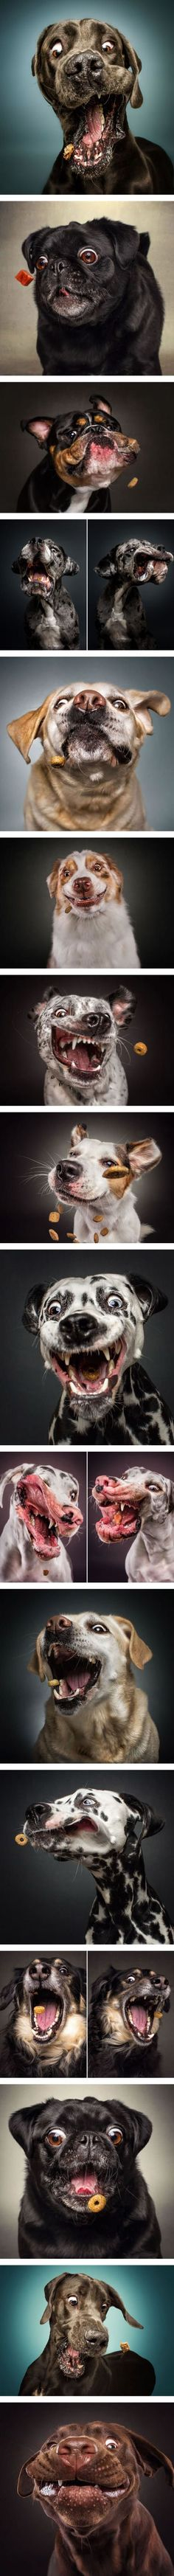 Expressions of Dogs Catching Treats In Mid-Air (By Christian Vieler-Kircher), art, photography #funnydogs